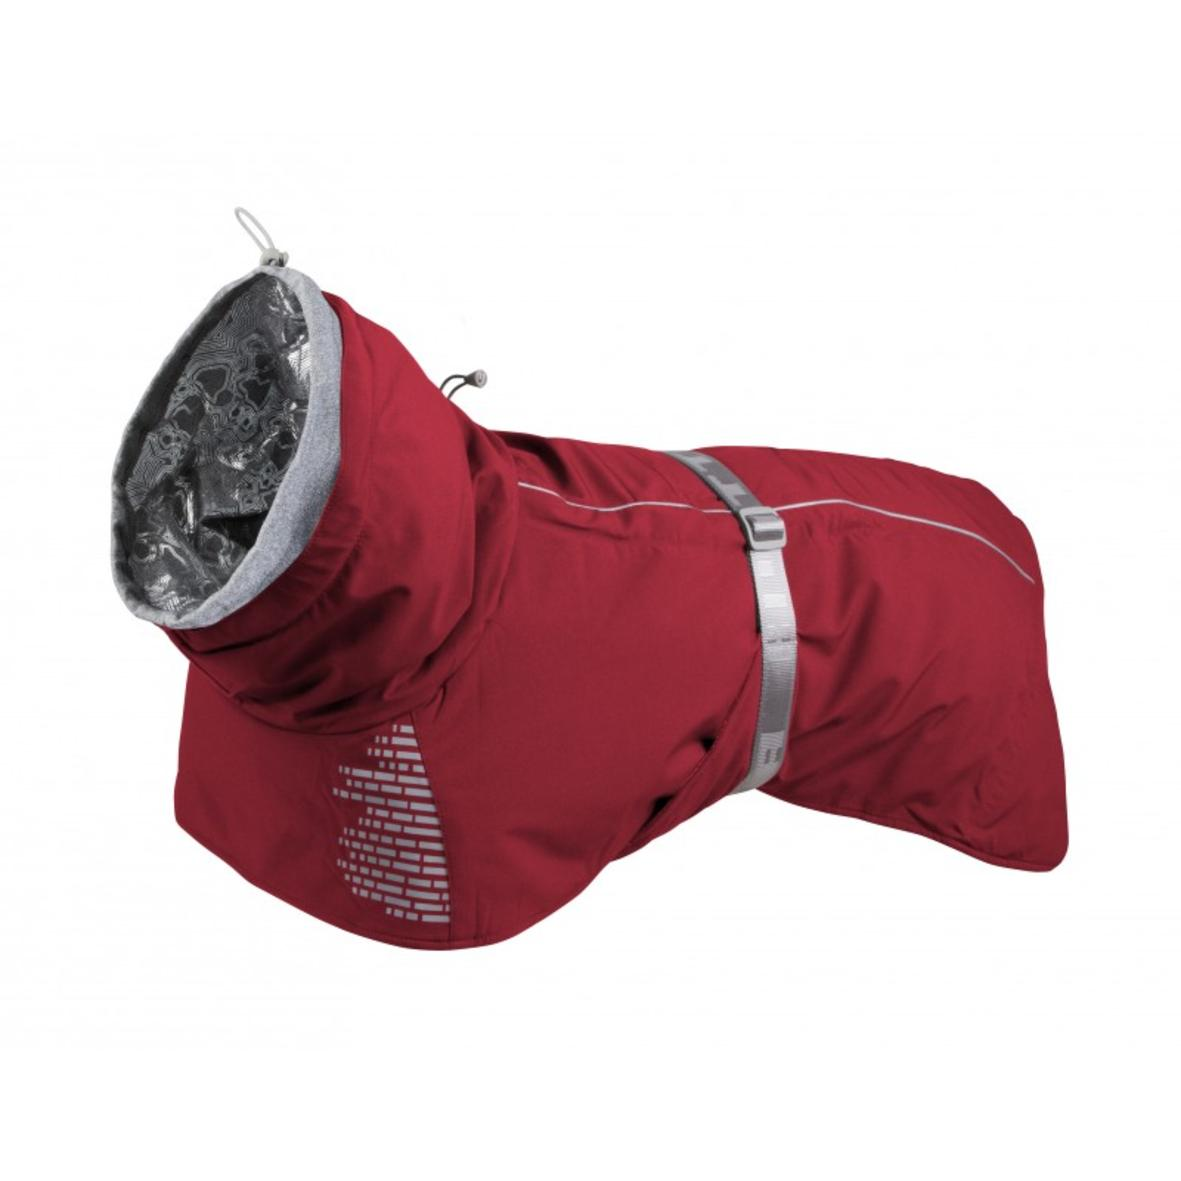 CLEARANCE Hurtta Outdoors Extreme Warmer Lingon 30cm